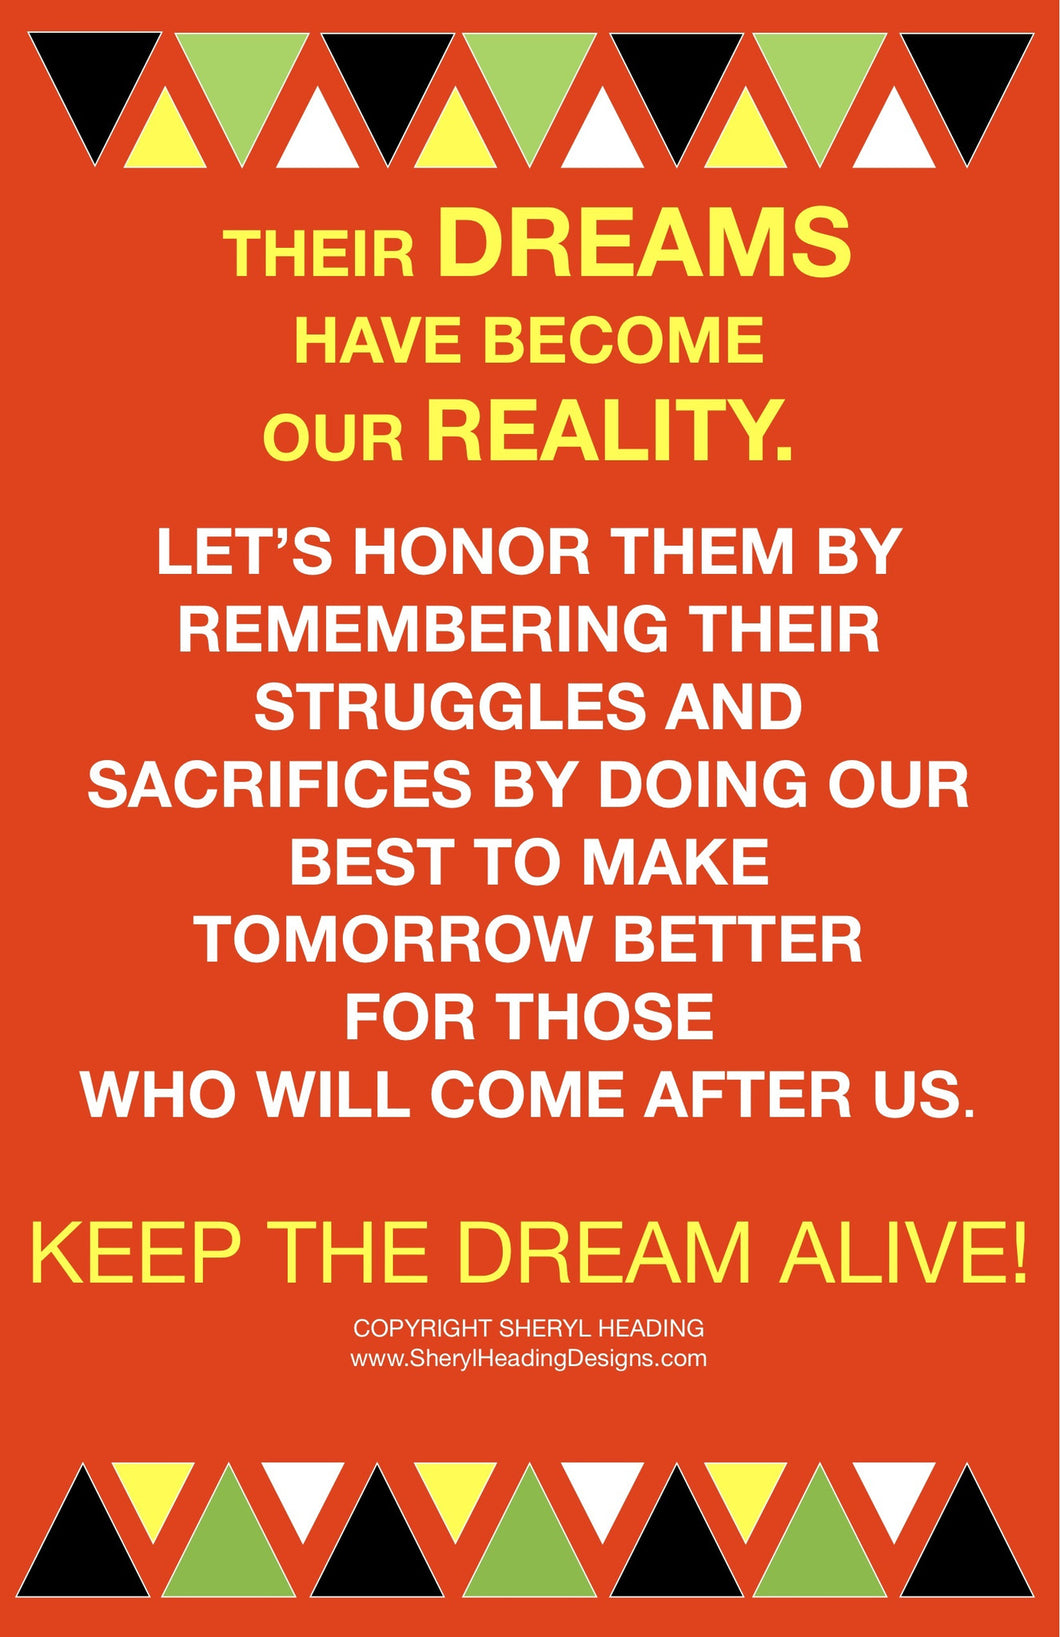 Their Dreams Have Become Our Reality Poster - Sheryl Heading Designs